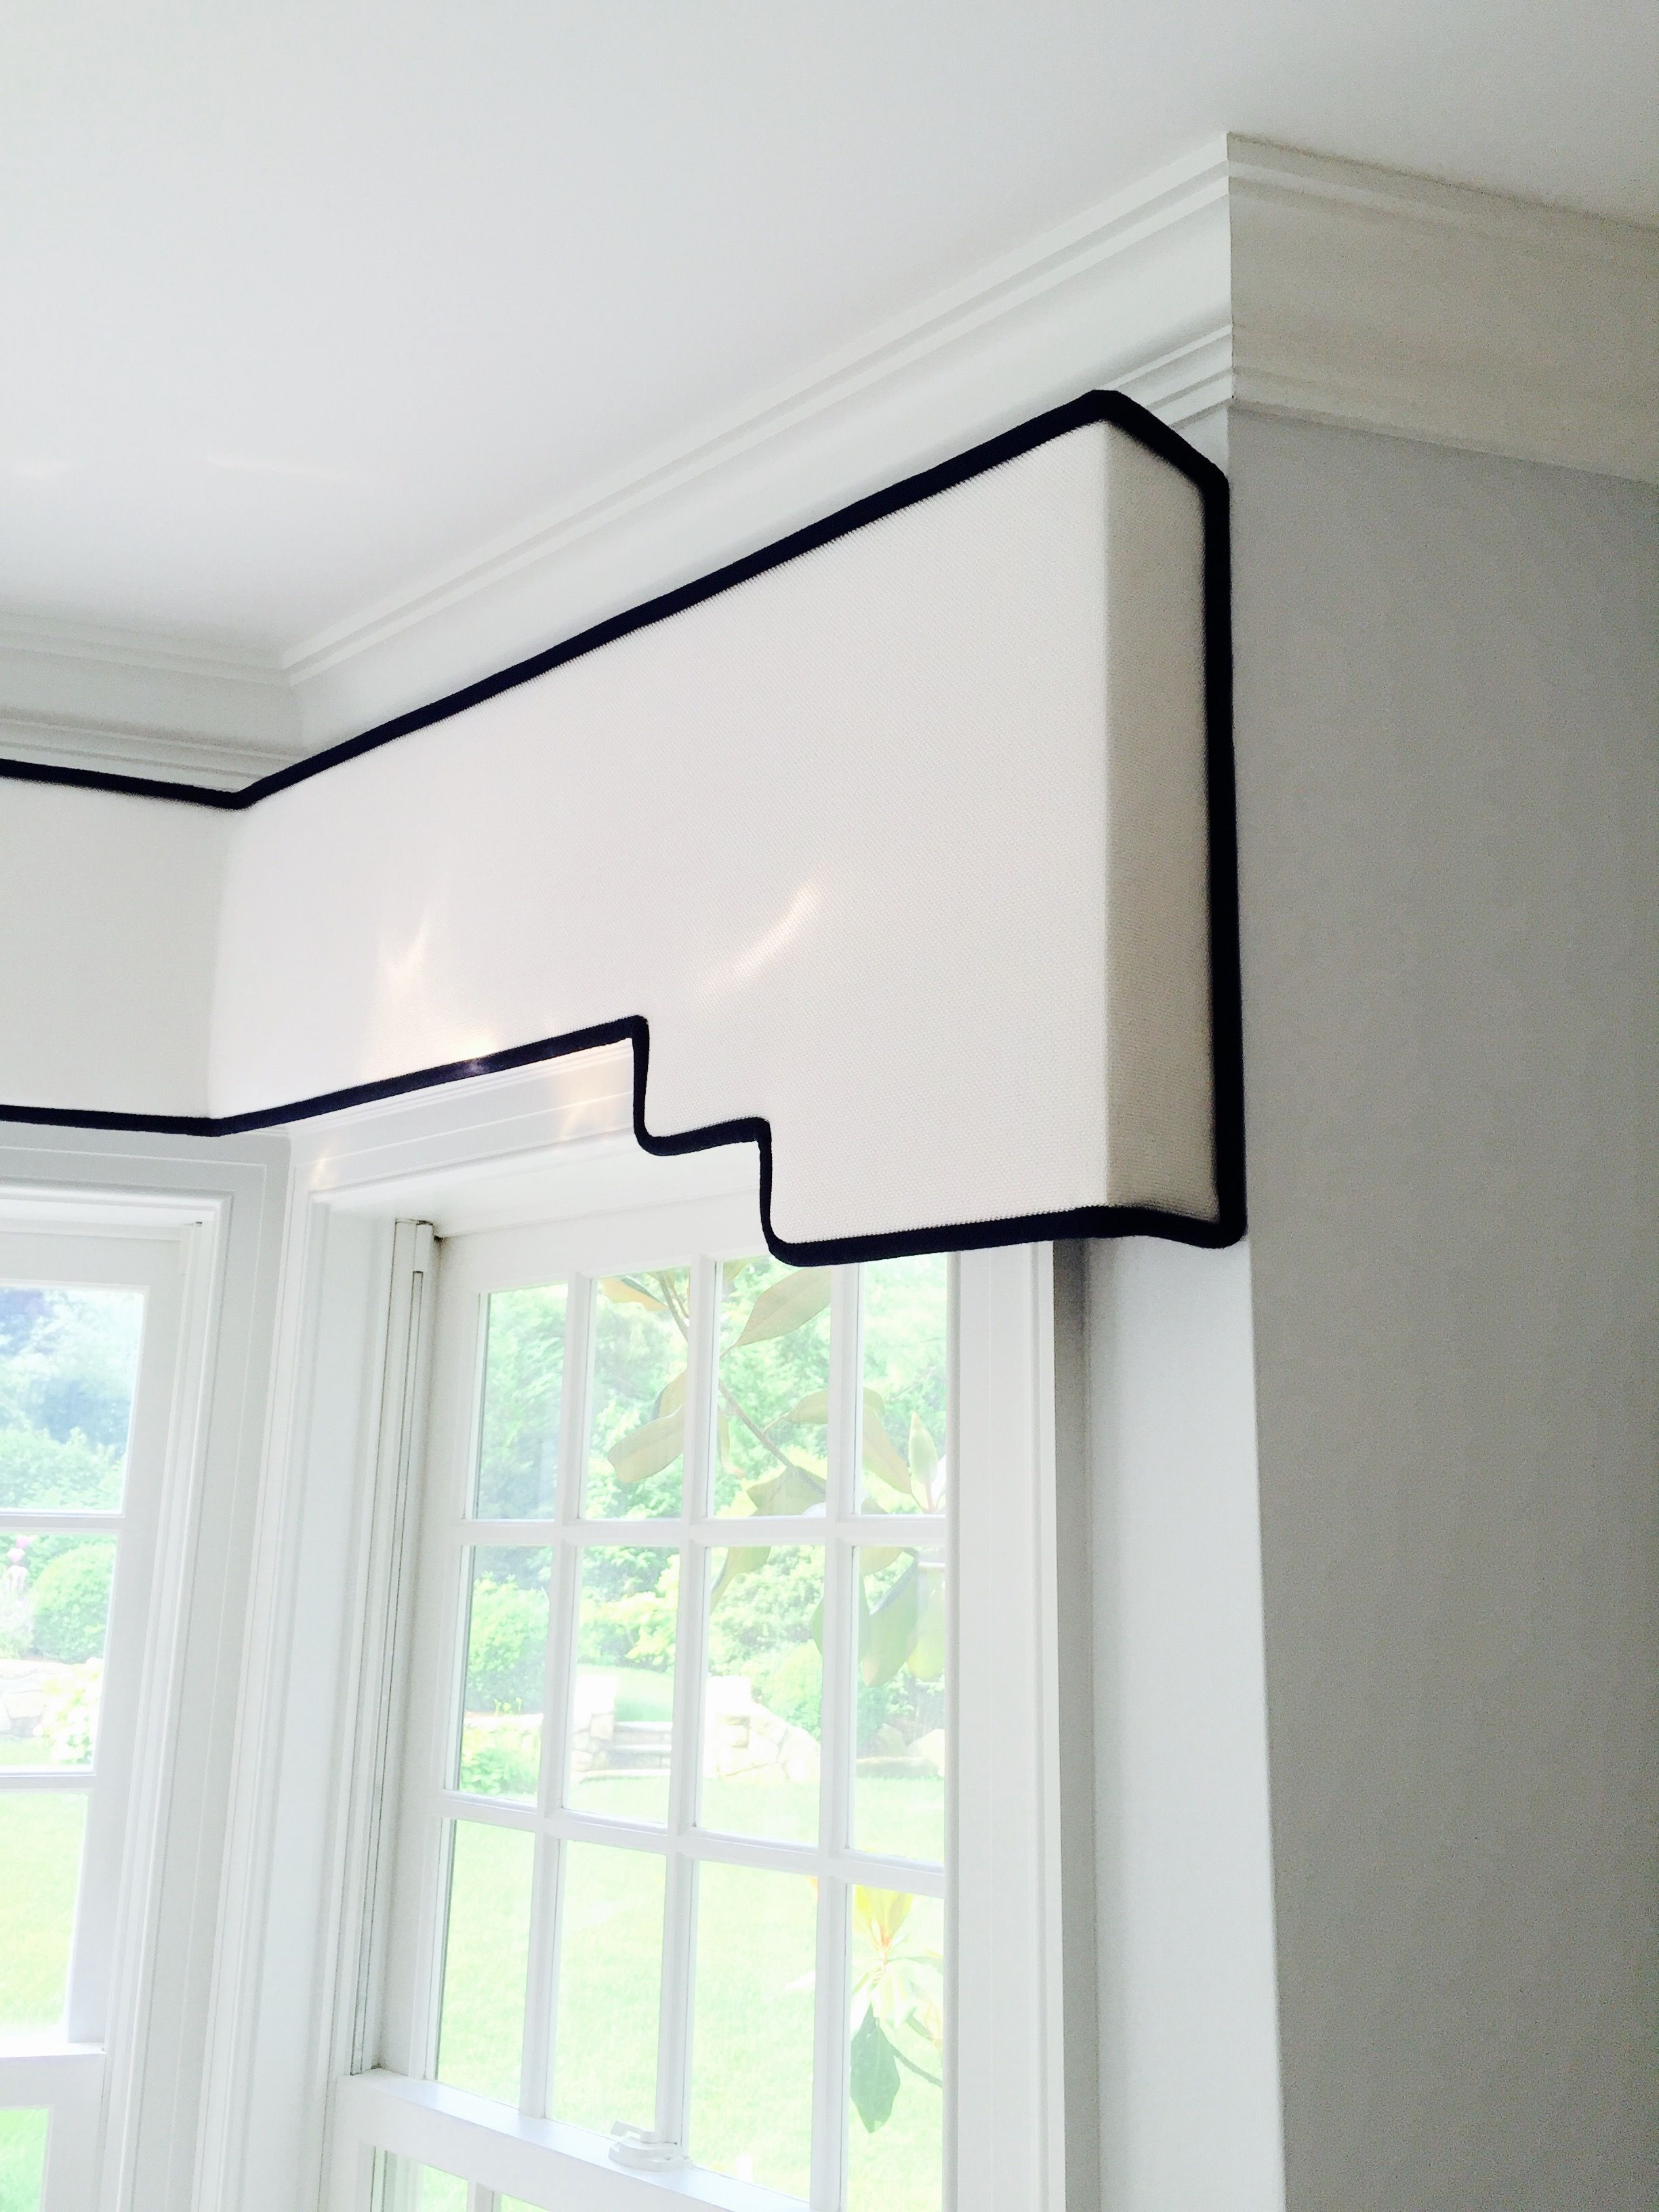 Softedged stepped cornice board in zimmer  rohde white